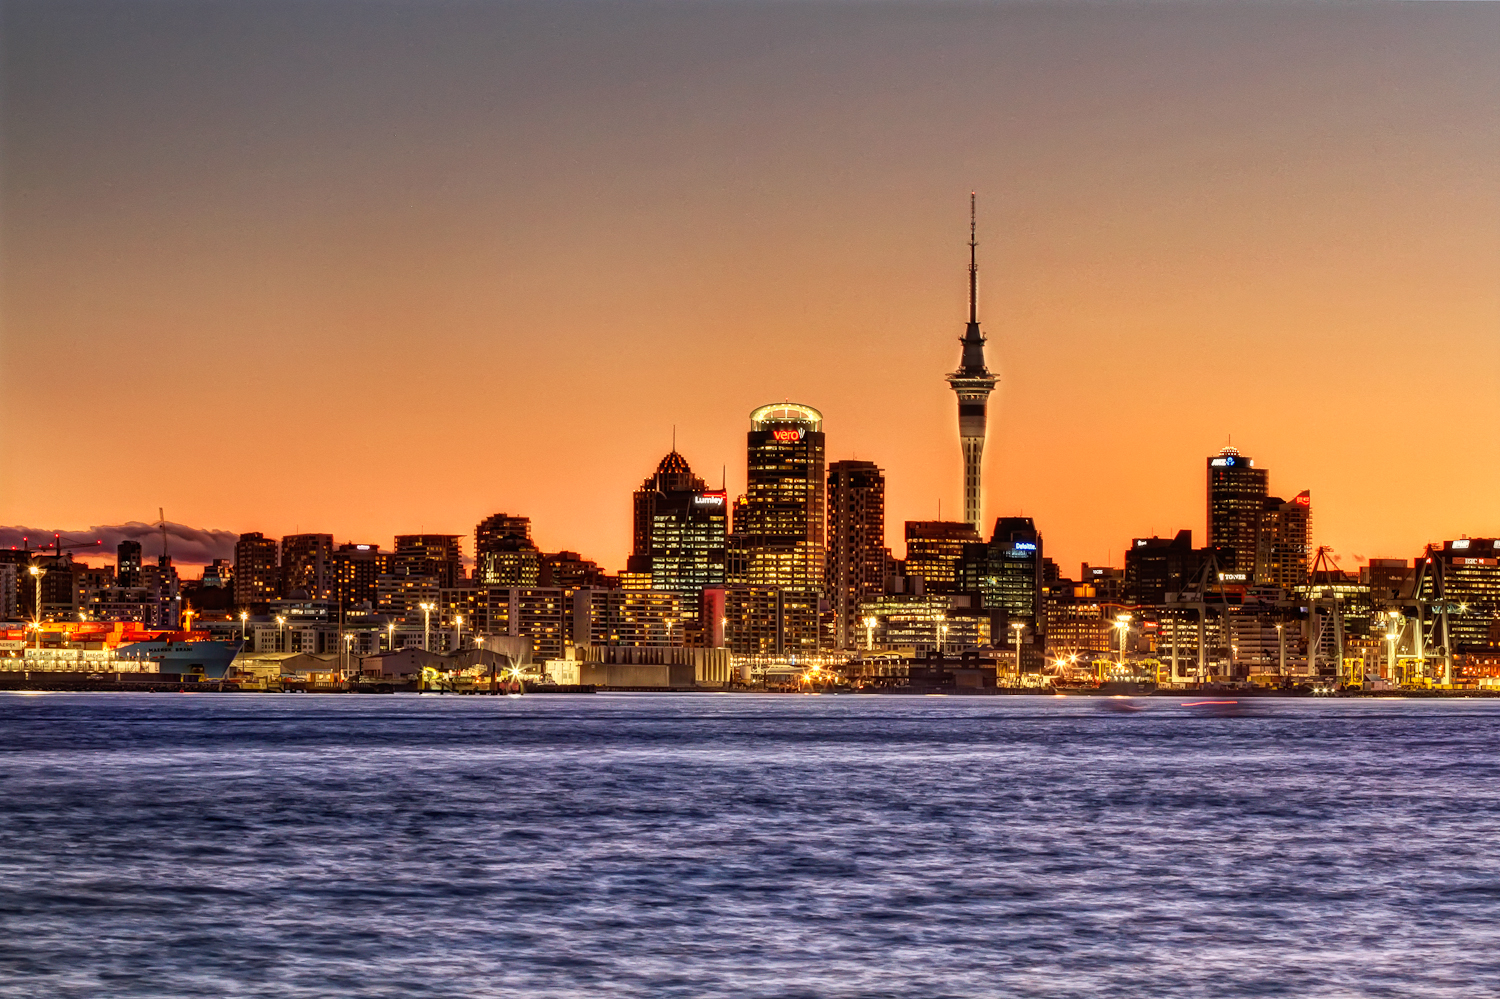 Auckland, New Zealand will play host to an ad:tech conference this month. Photo by Stewart Baird on Flickr and used with Creative Commons license.